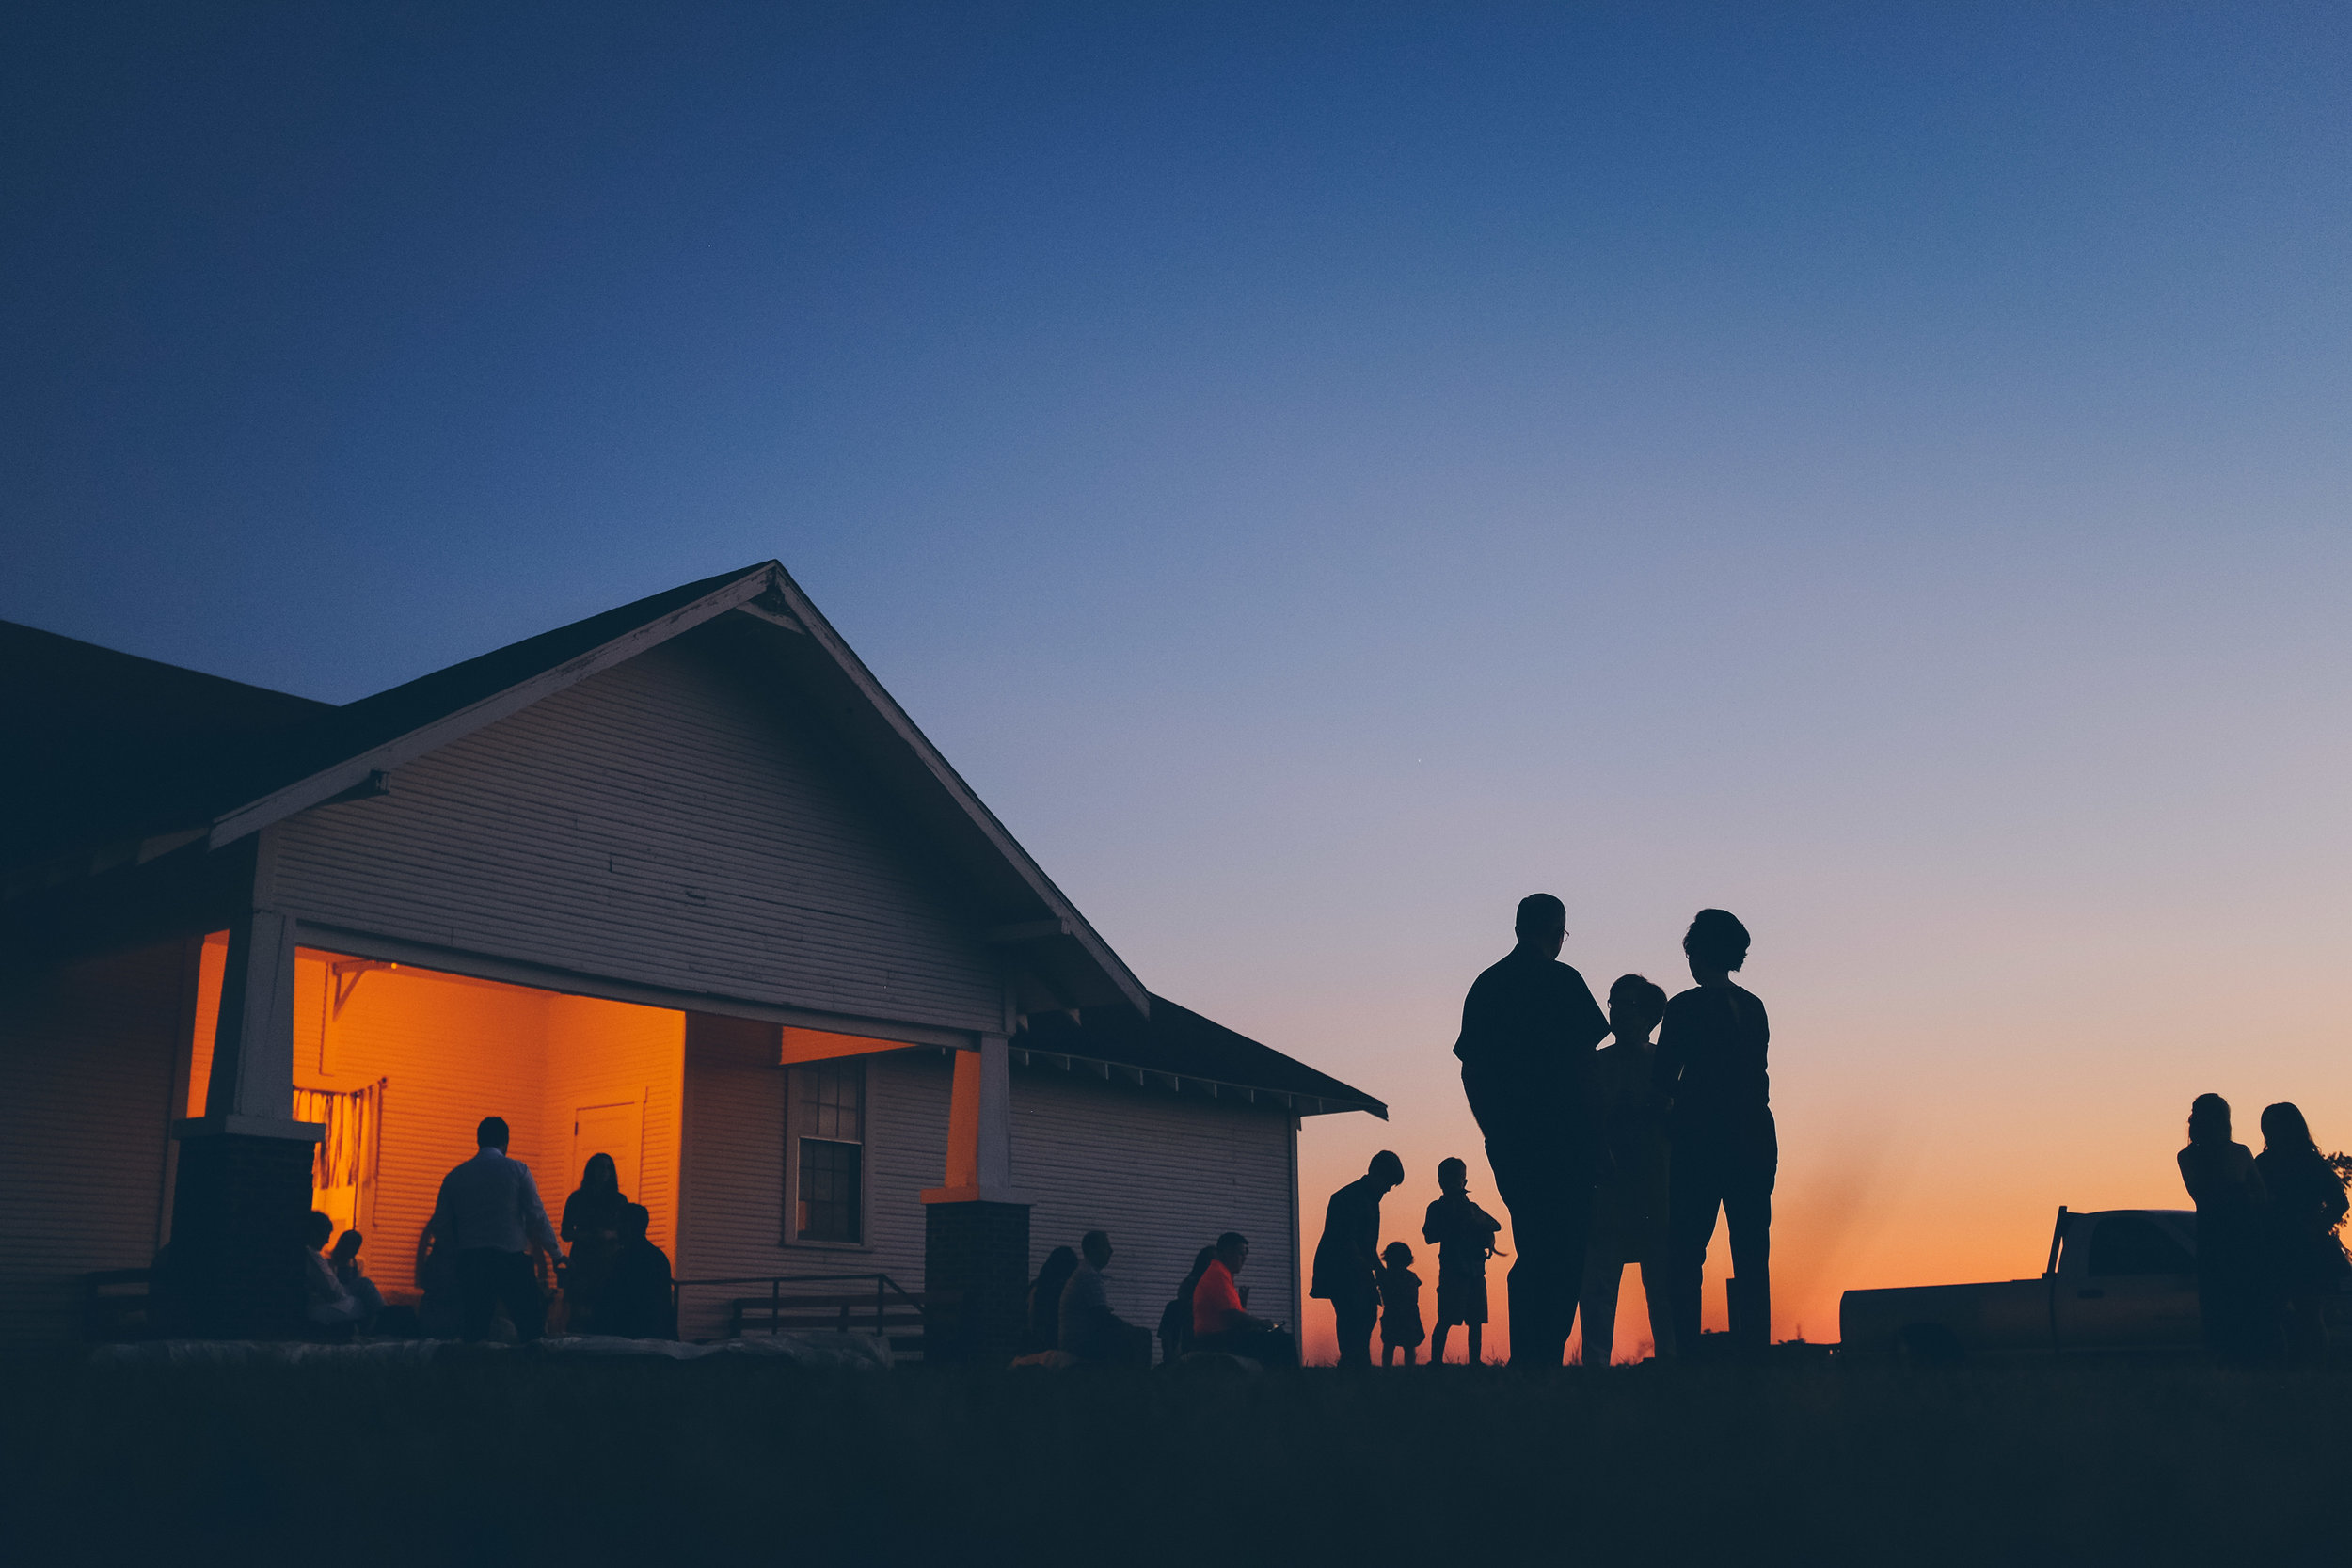 Color photo, outside wedding venue, silhouette of guests at sunset.